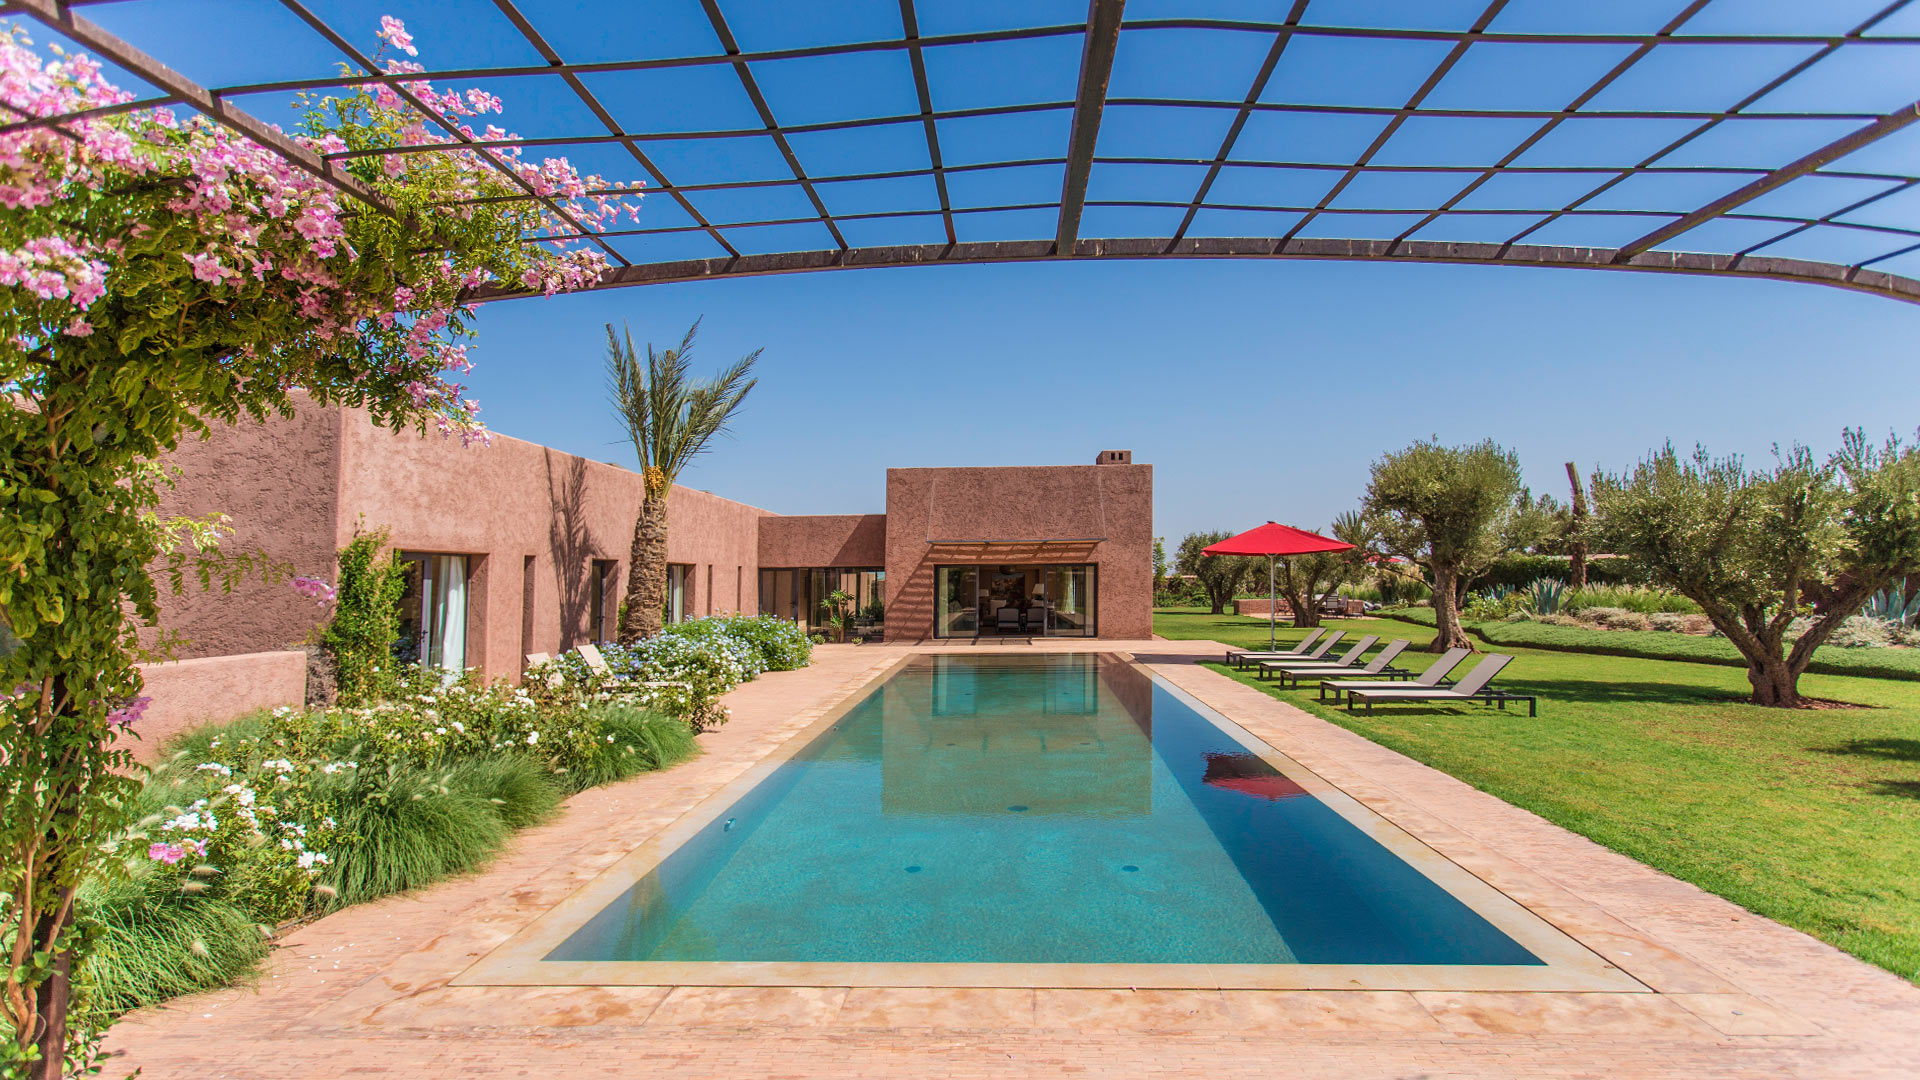 Villa Villa Inissia, Location à Marrakech